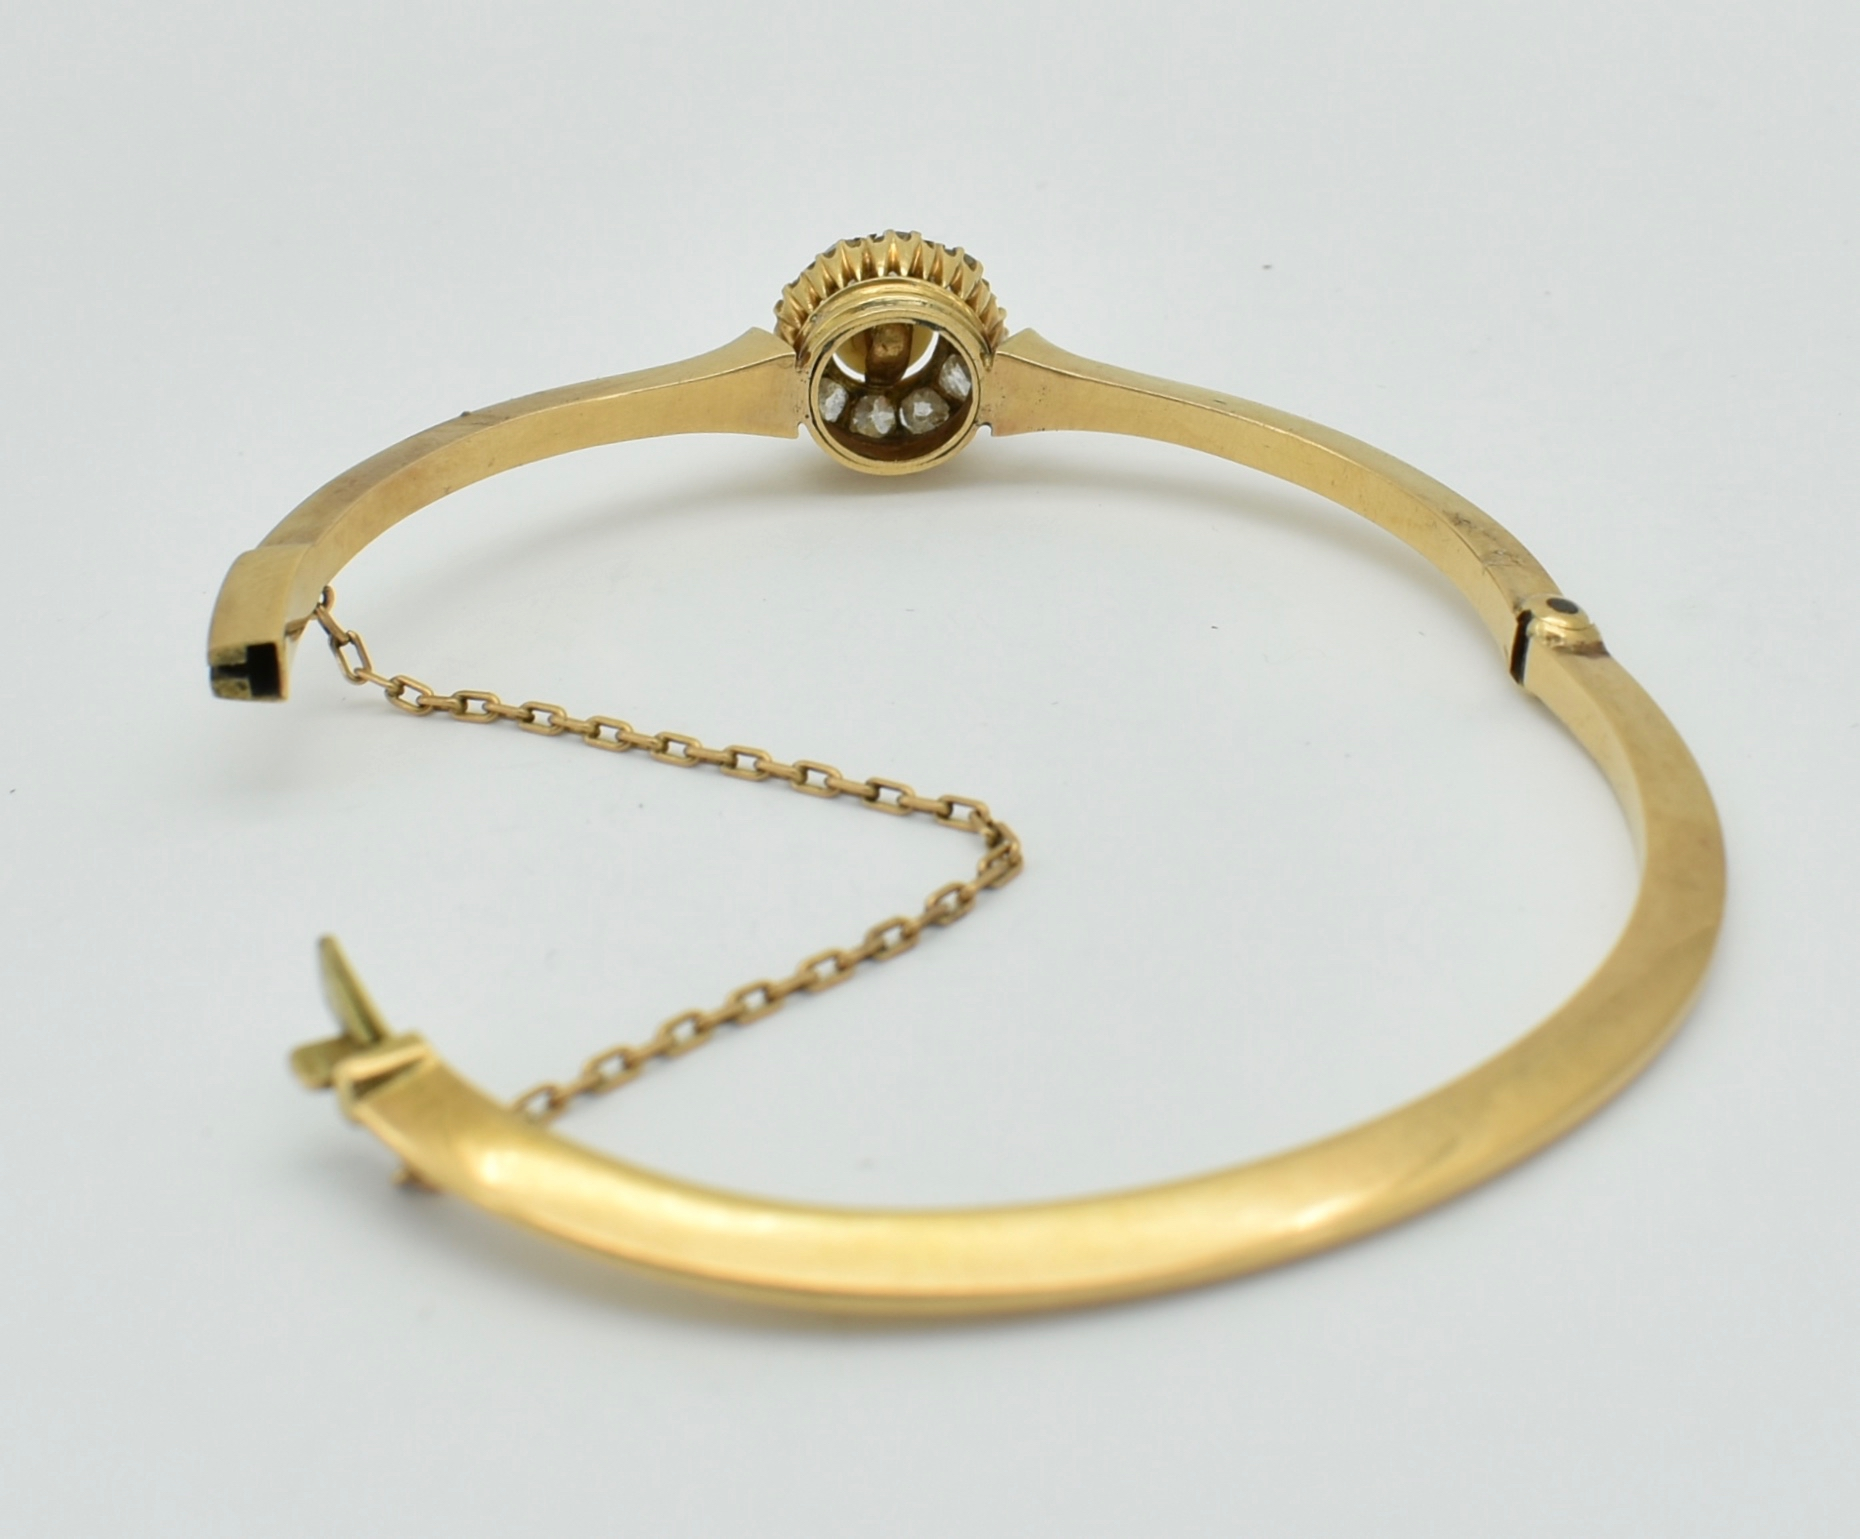 FRENCH 18CT GOLD DIAMOND & PEARL HINGED BANGLE - Image 6 of 6